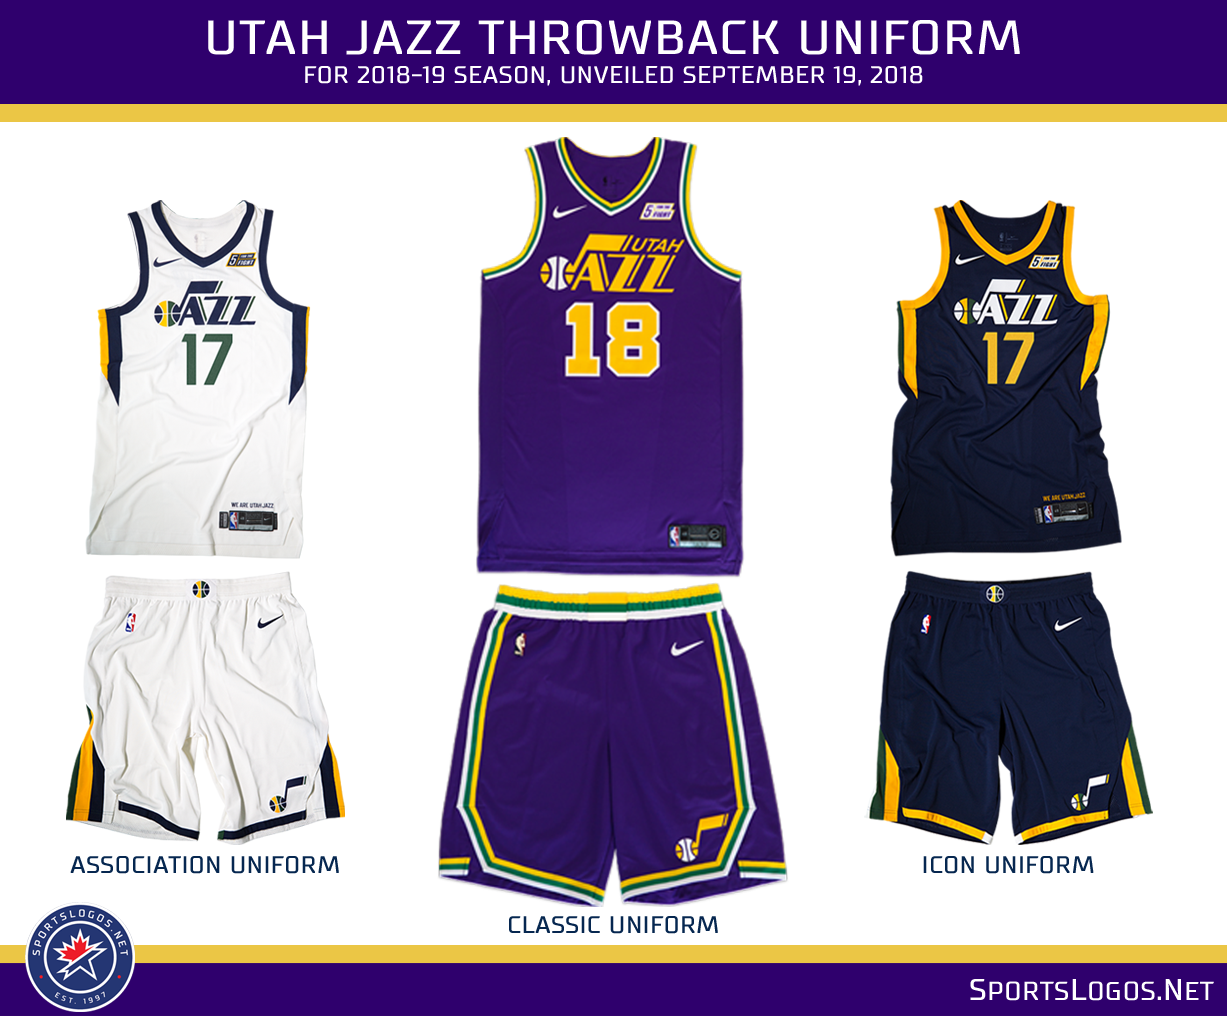 3329da966940 Utah Jazz Classic Throwback Uniform 2019 2018 Nike